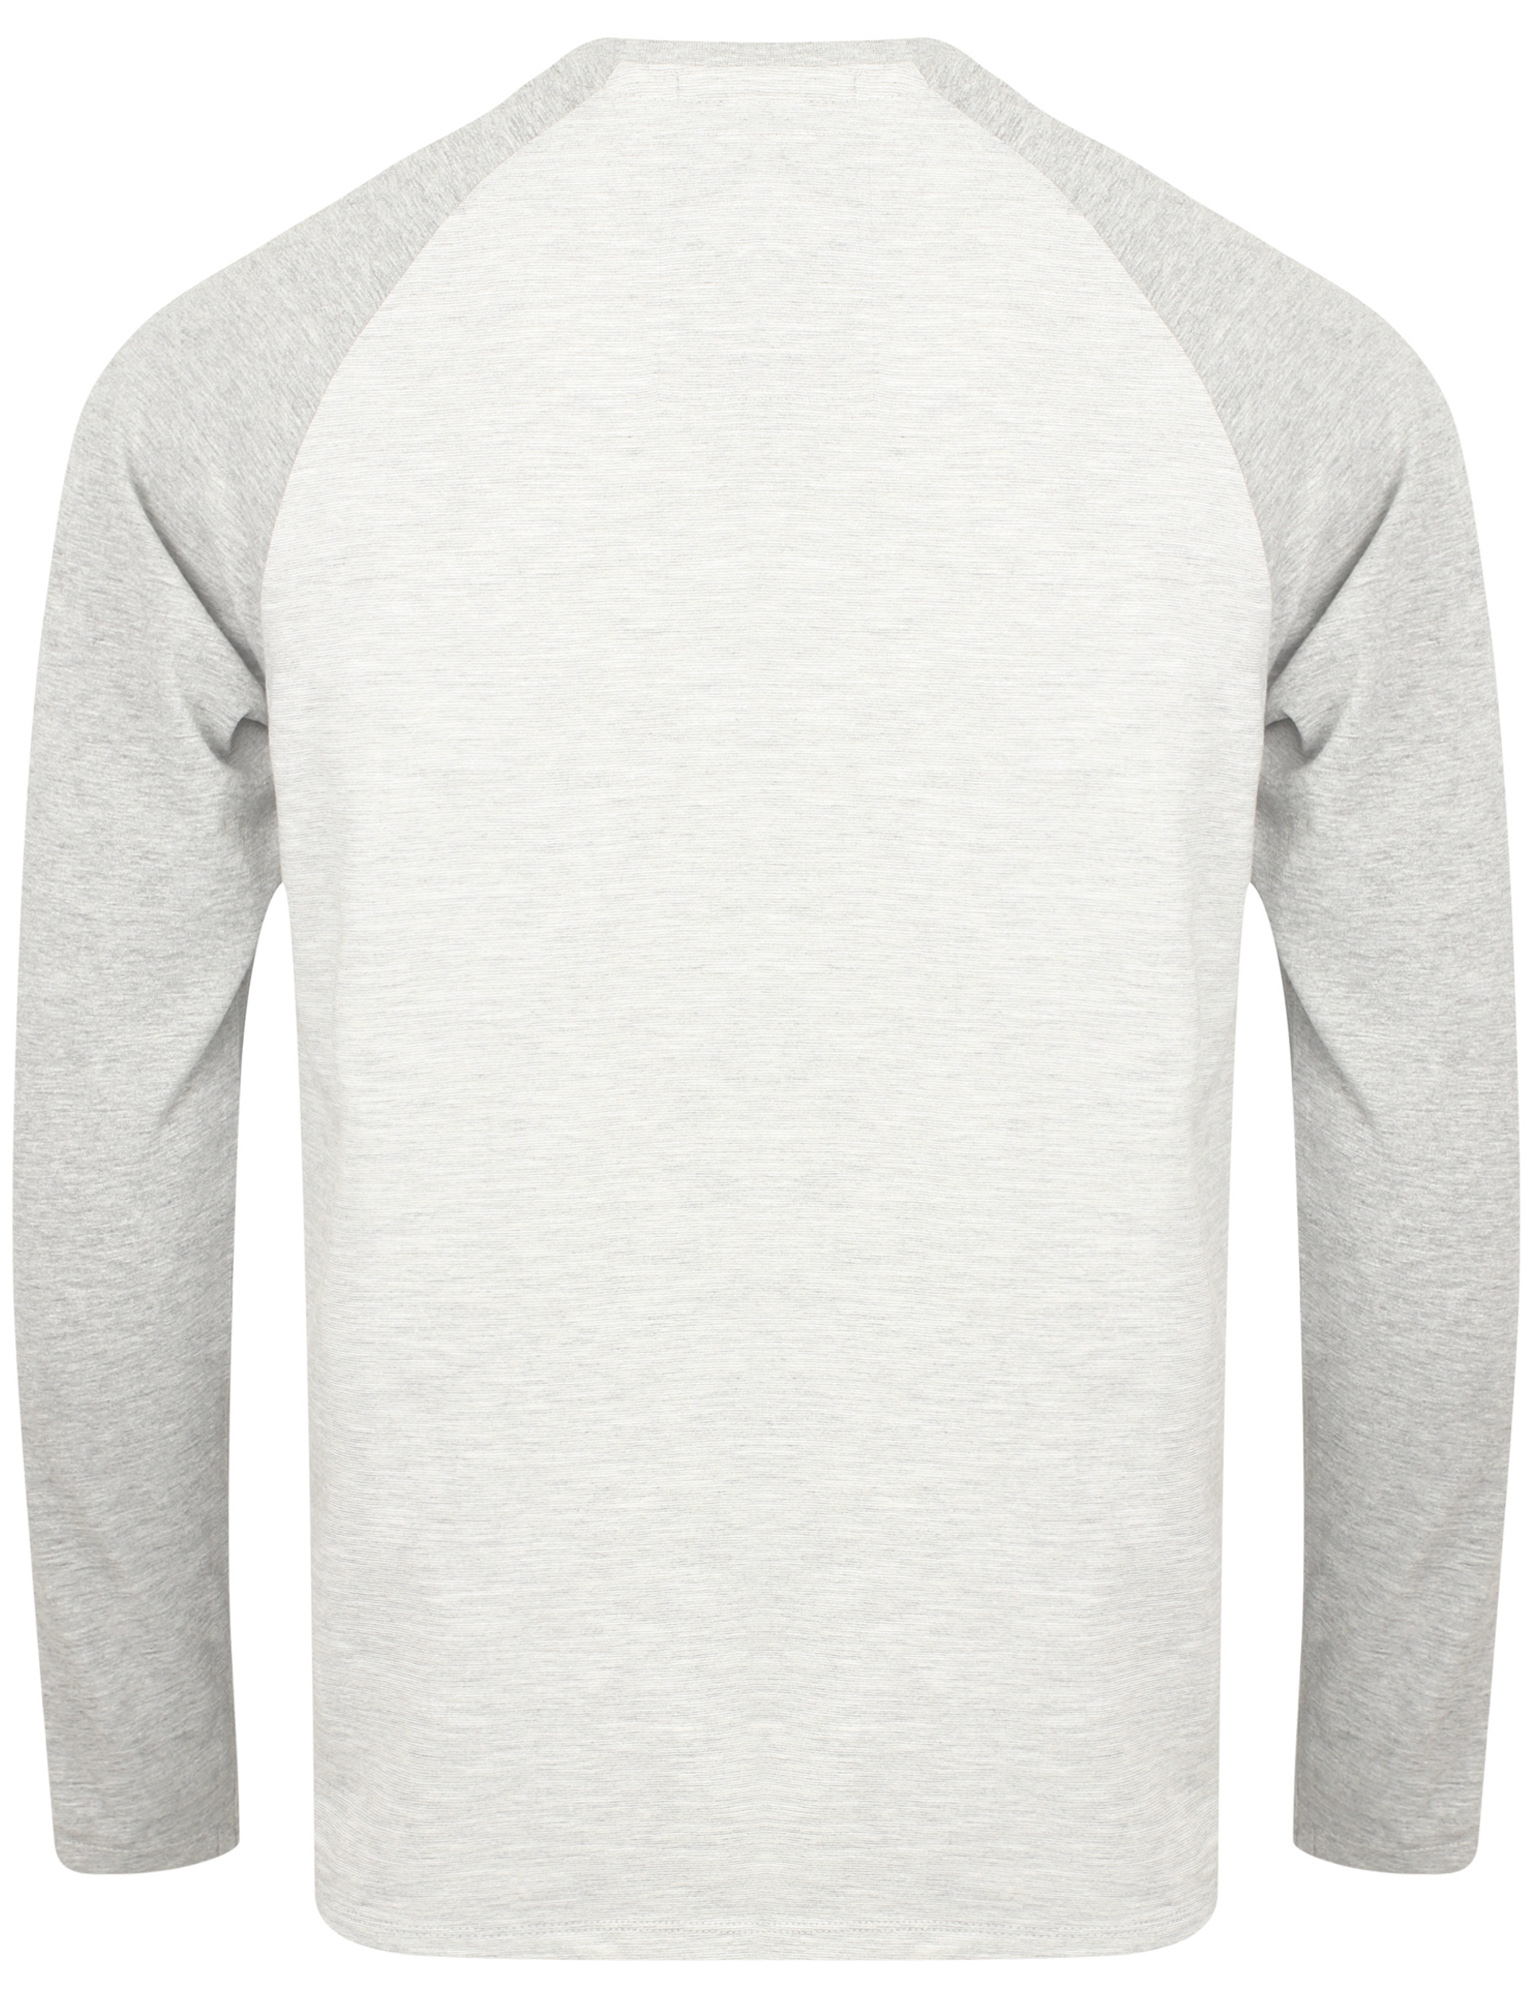 New-Mens-Tokyo-Laundry-Branded-Soft-Jersey-Long-Sleeve-Tops-T-Shirts-Size-S-XL thumbnail 19